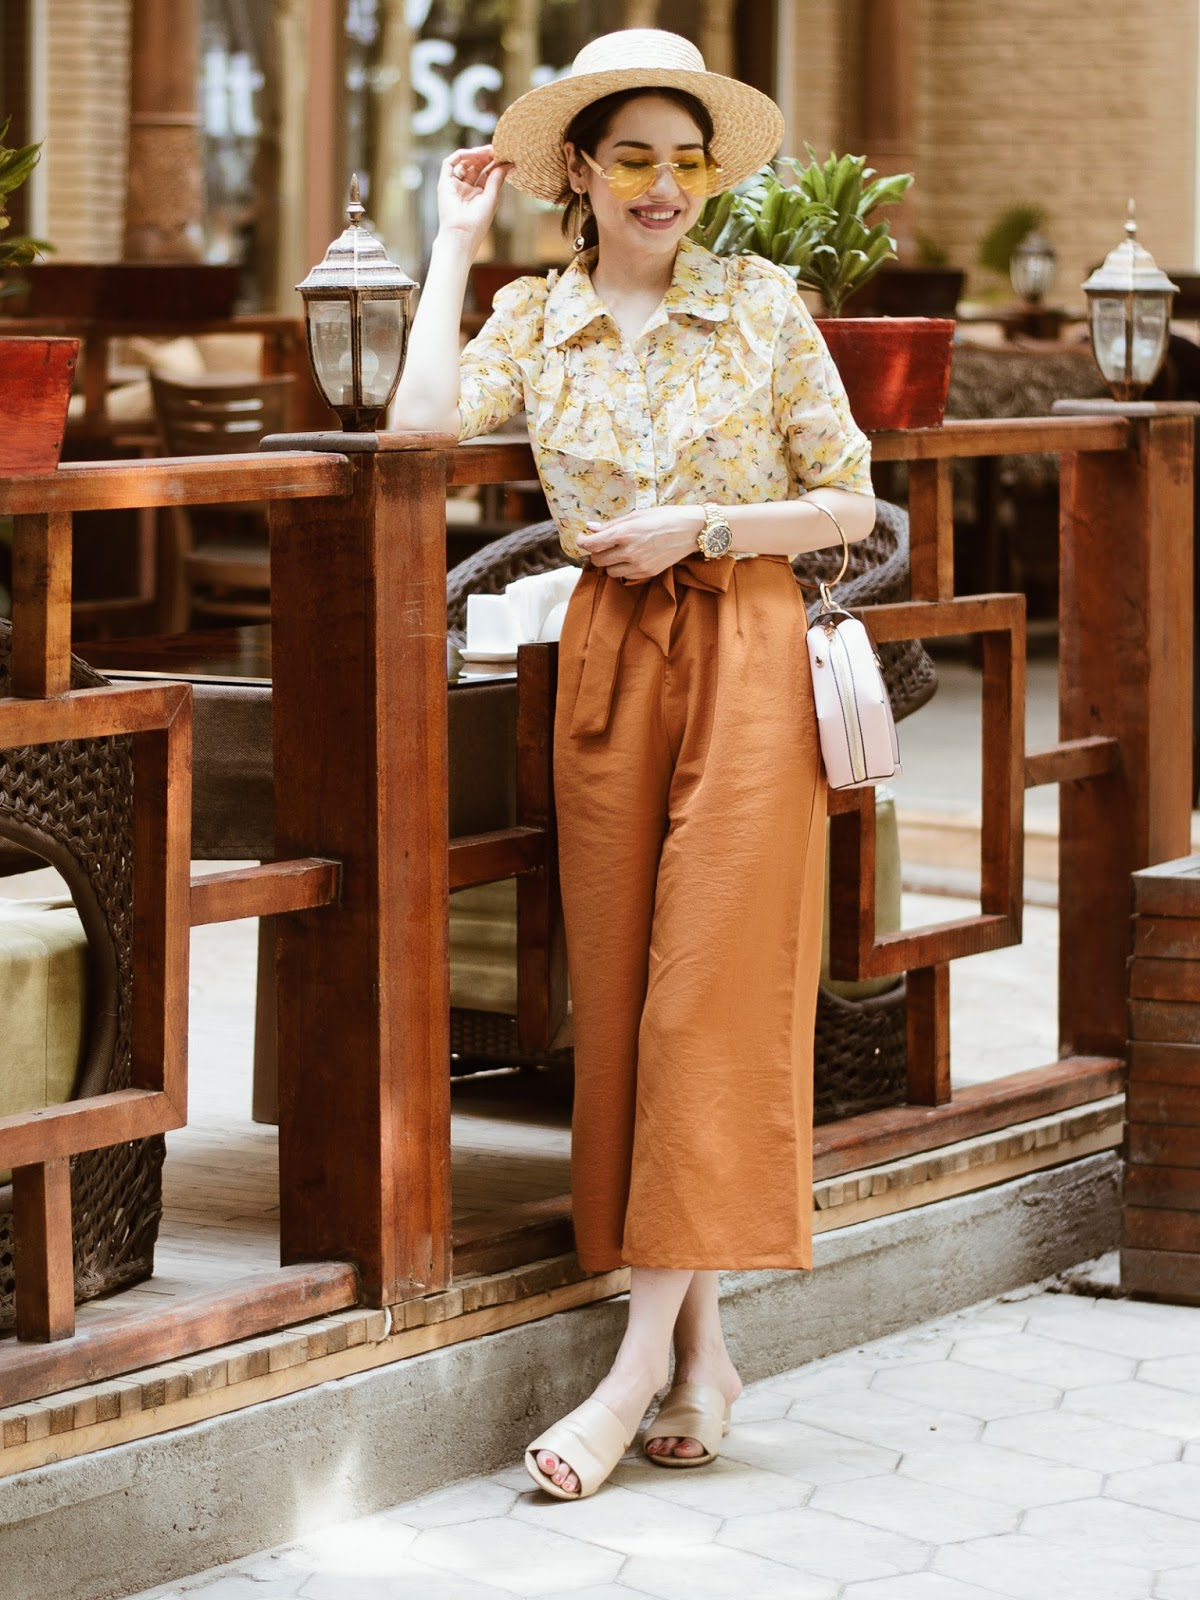 diyorasnotes diyora beta fashion blogger style outfitoftheday lookoftheday rust high waised culottes florap print blouse straw hat asos mules